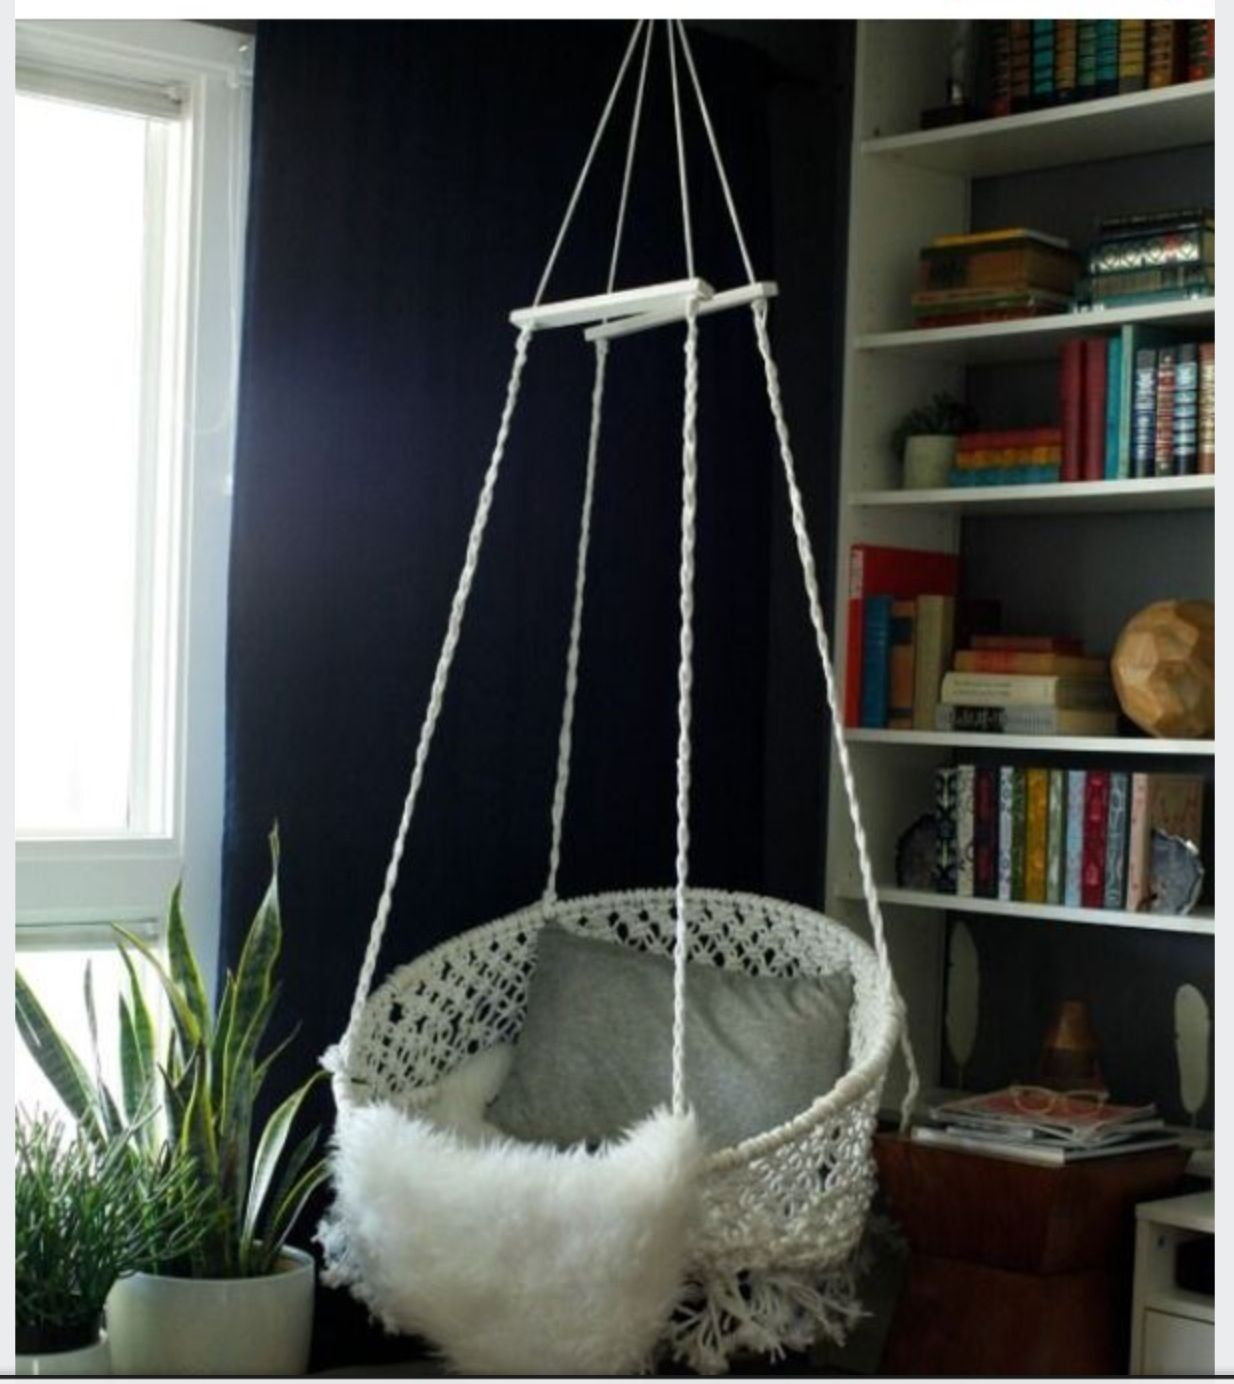 marrakech swing chair powerline roman review pin by patricia vu on room inspo pinterest